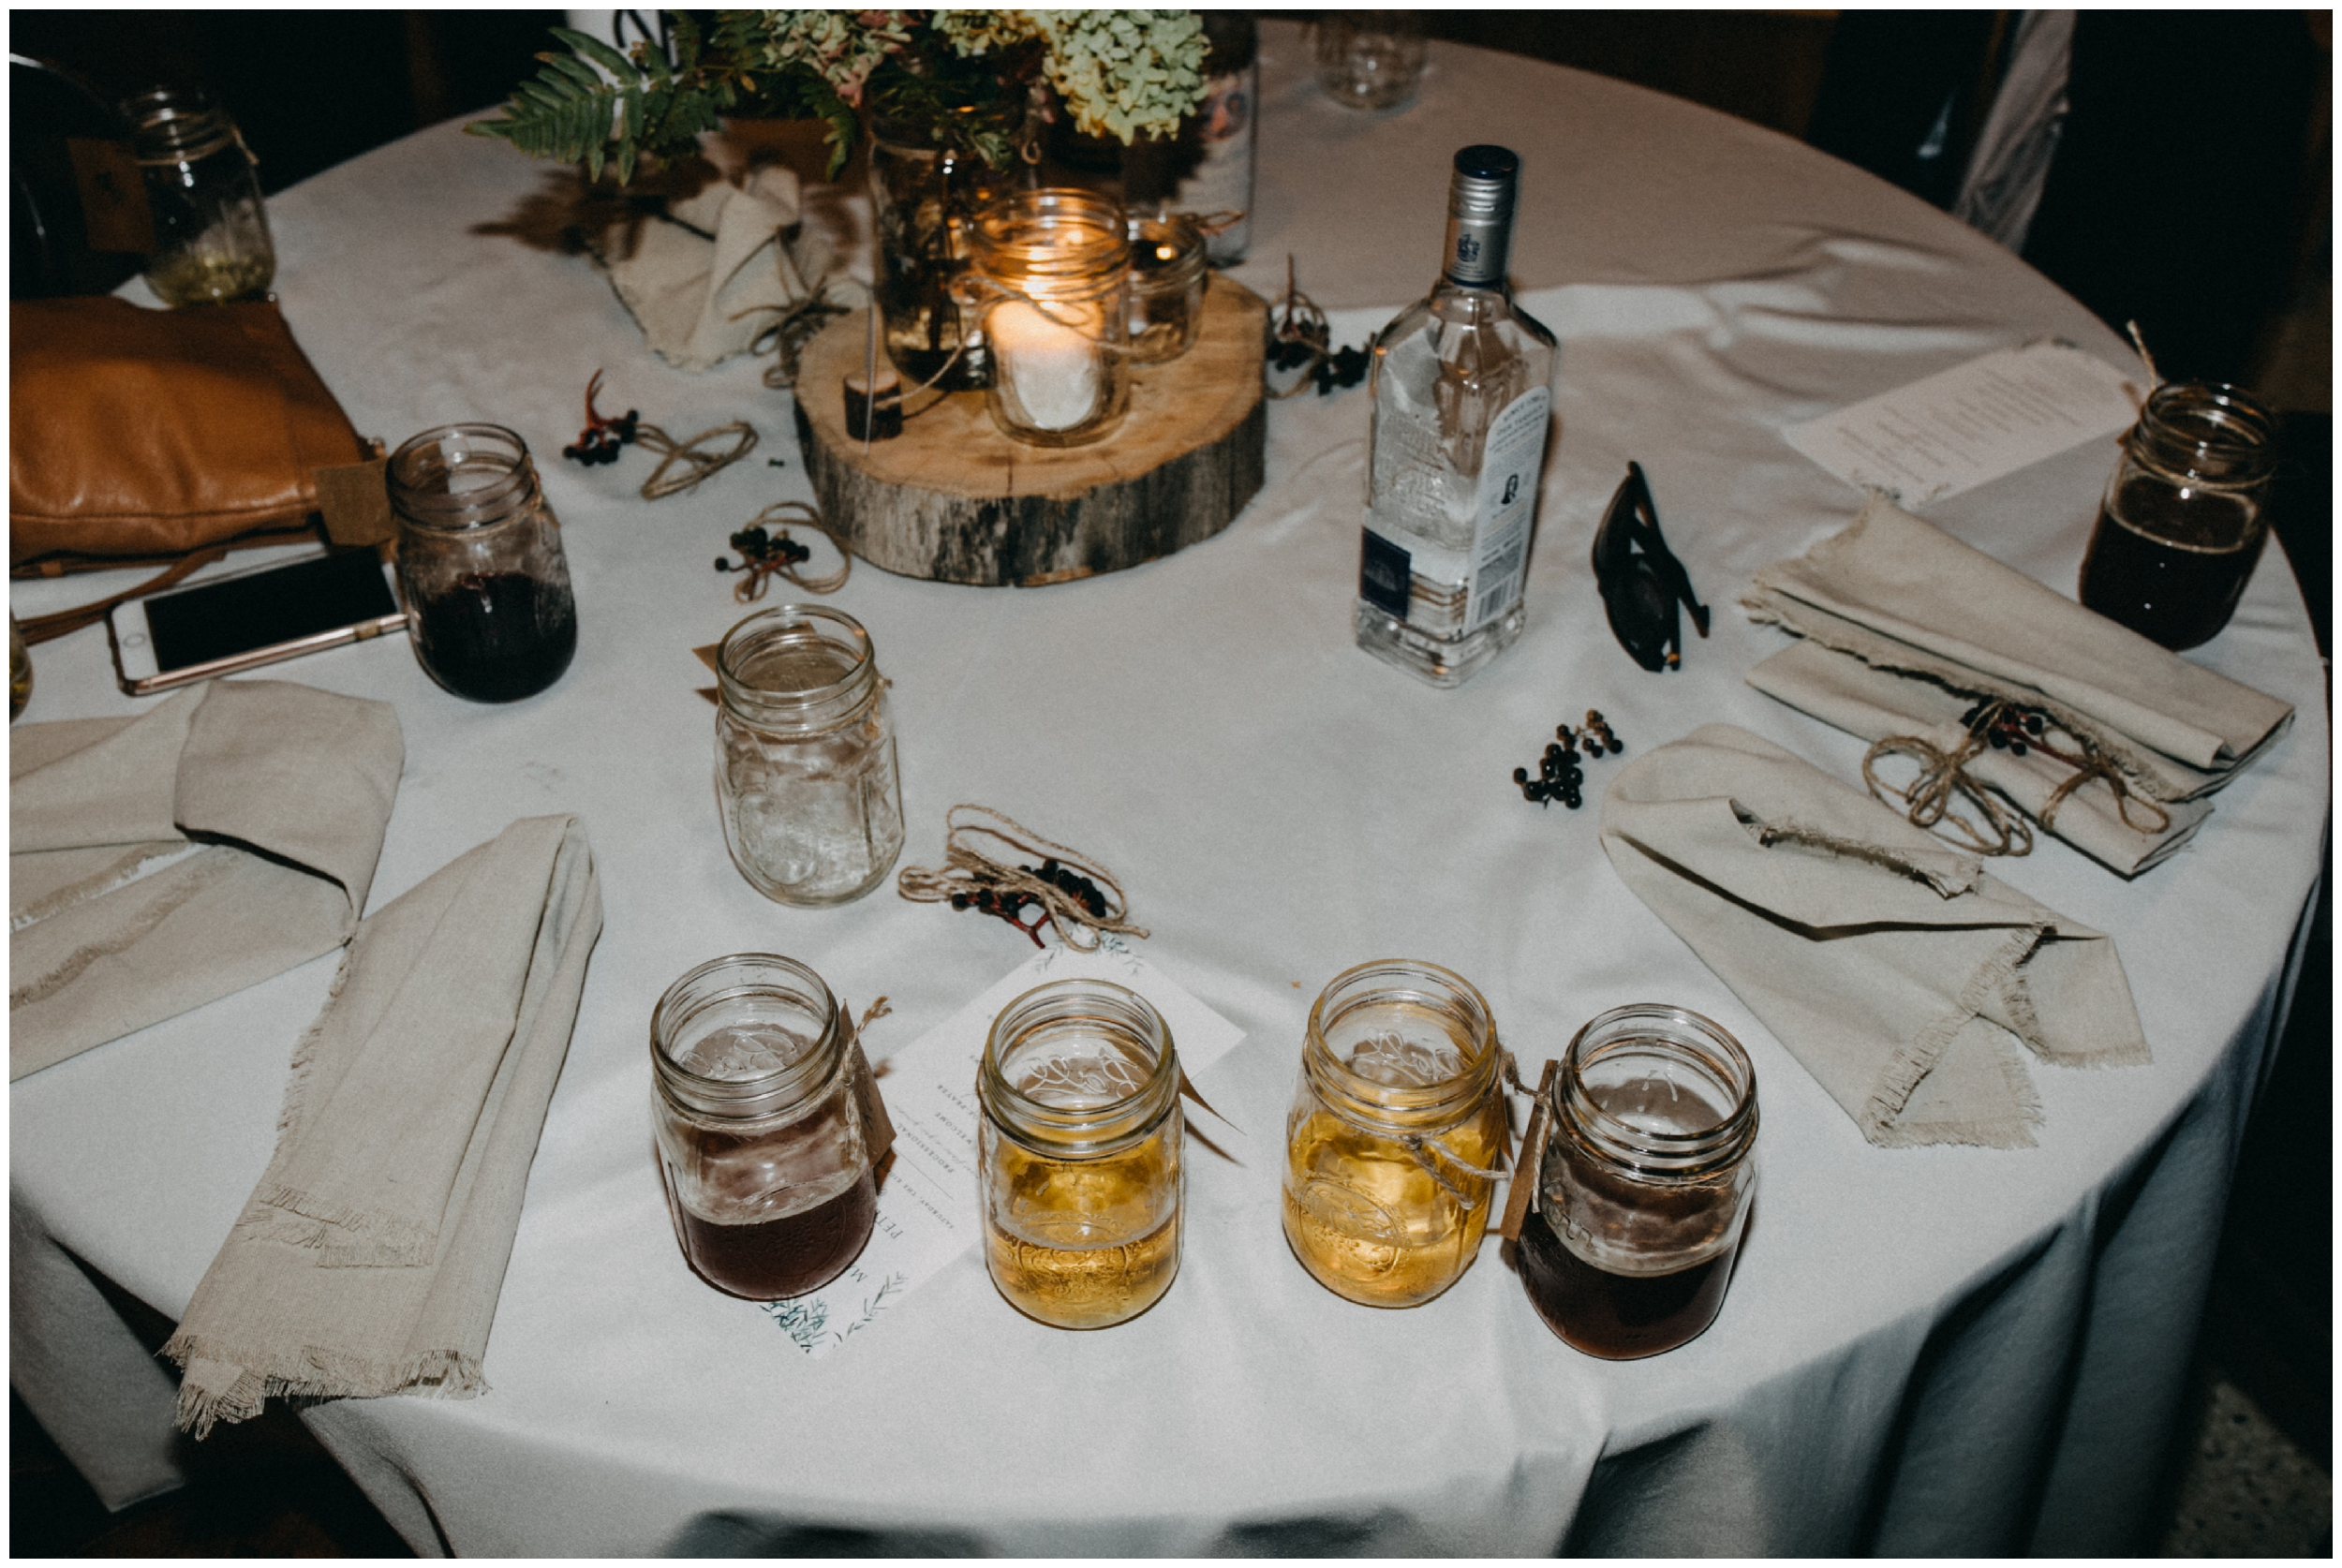 Wedding reception table at the end of the night at Camp Foley